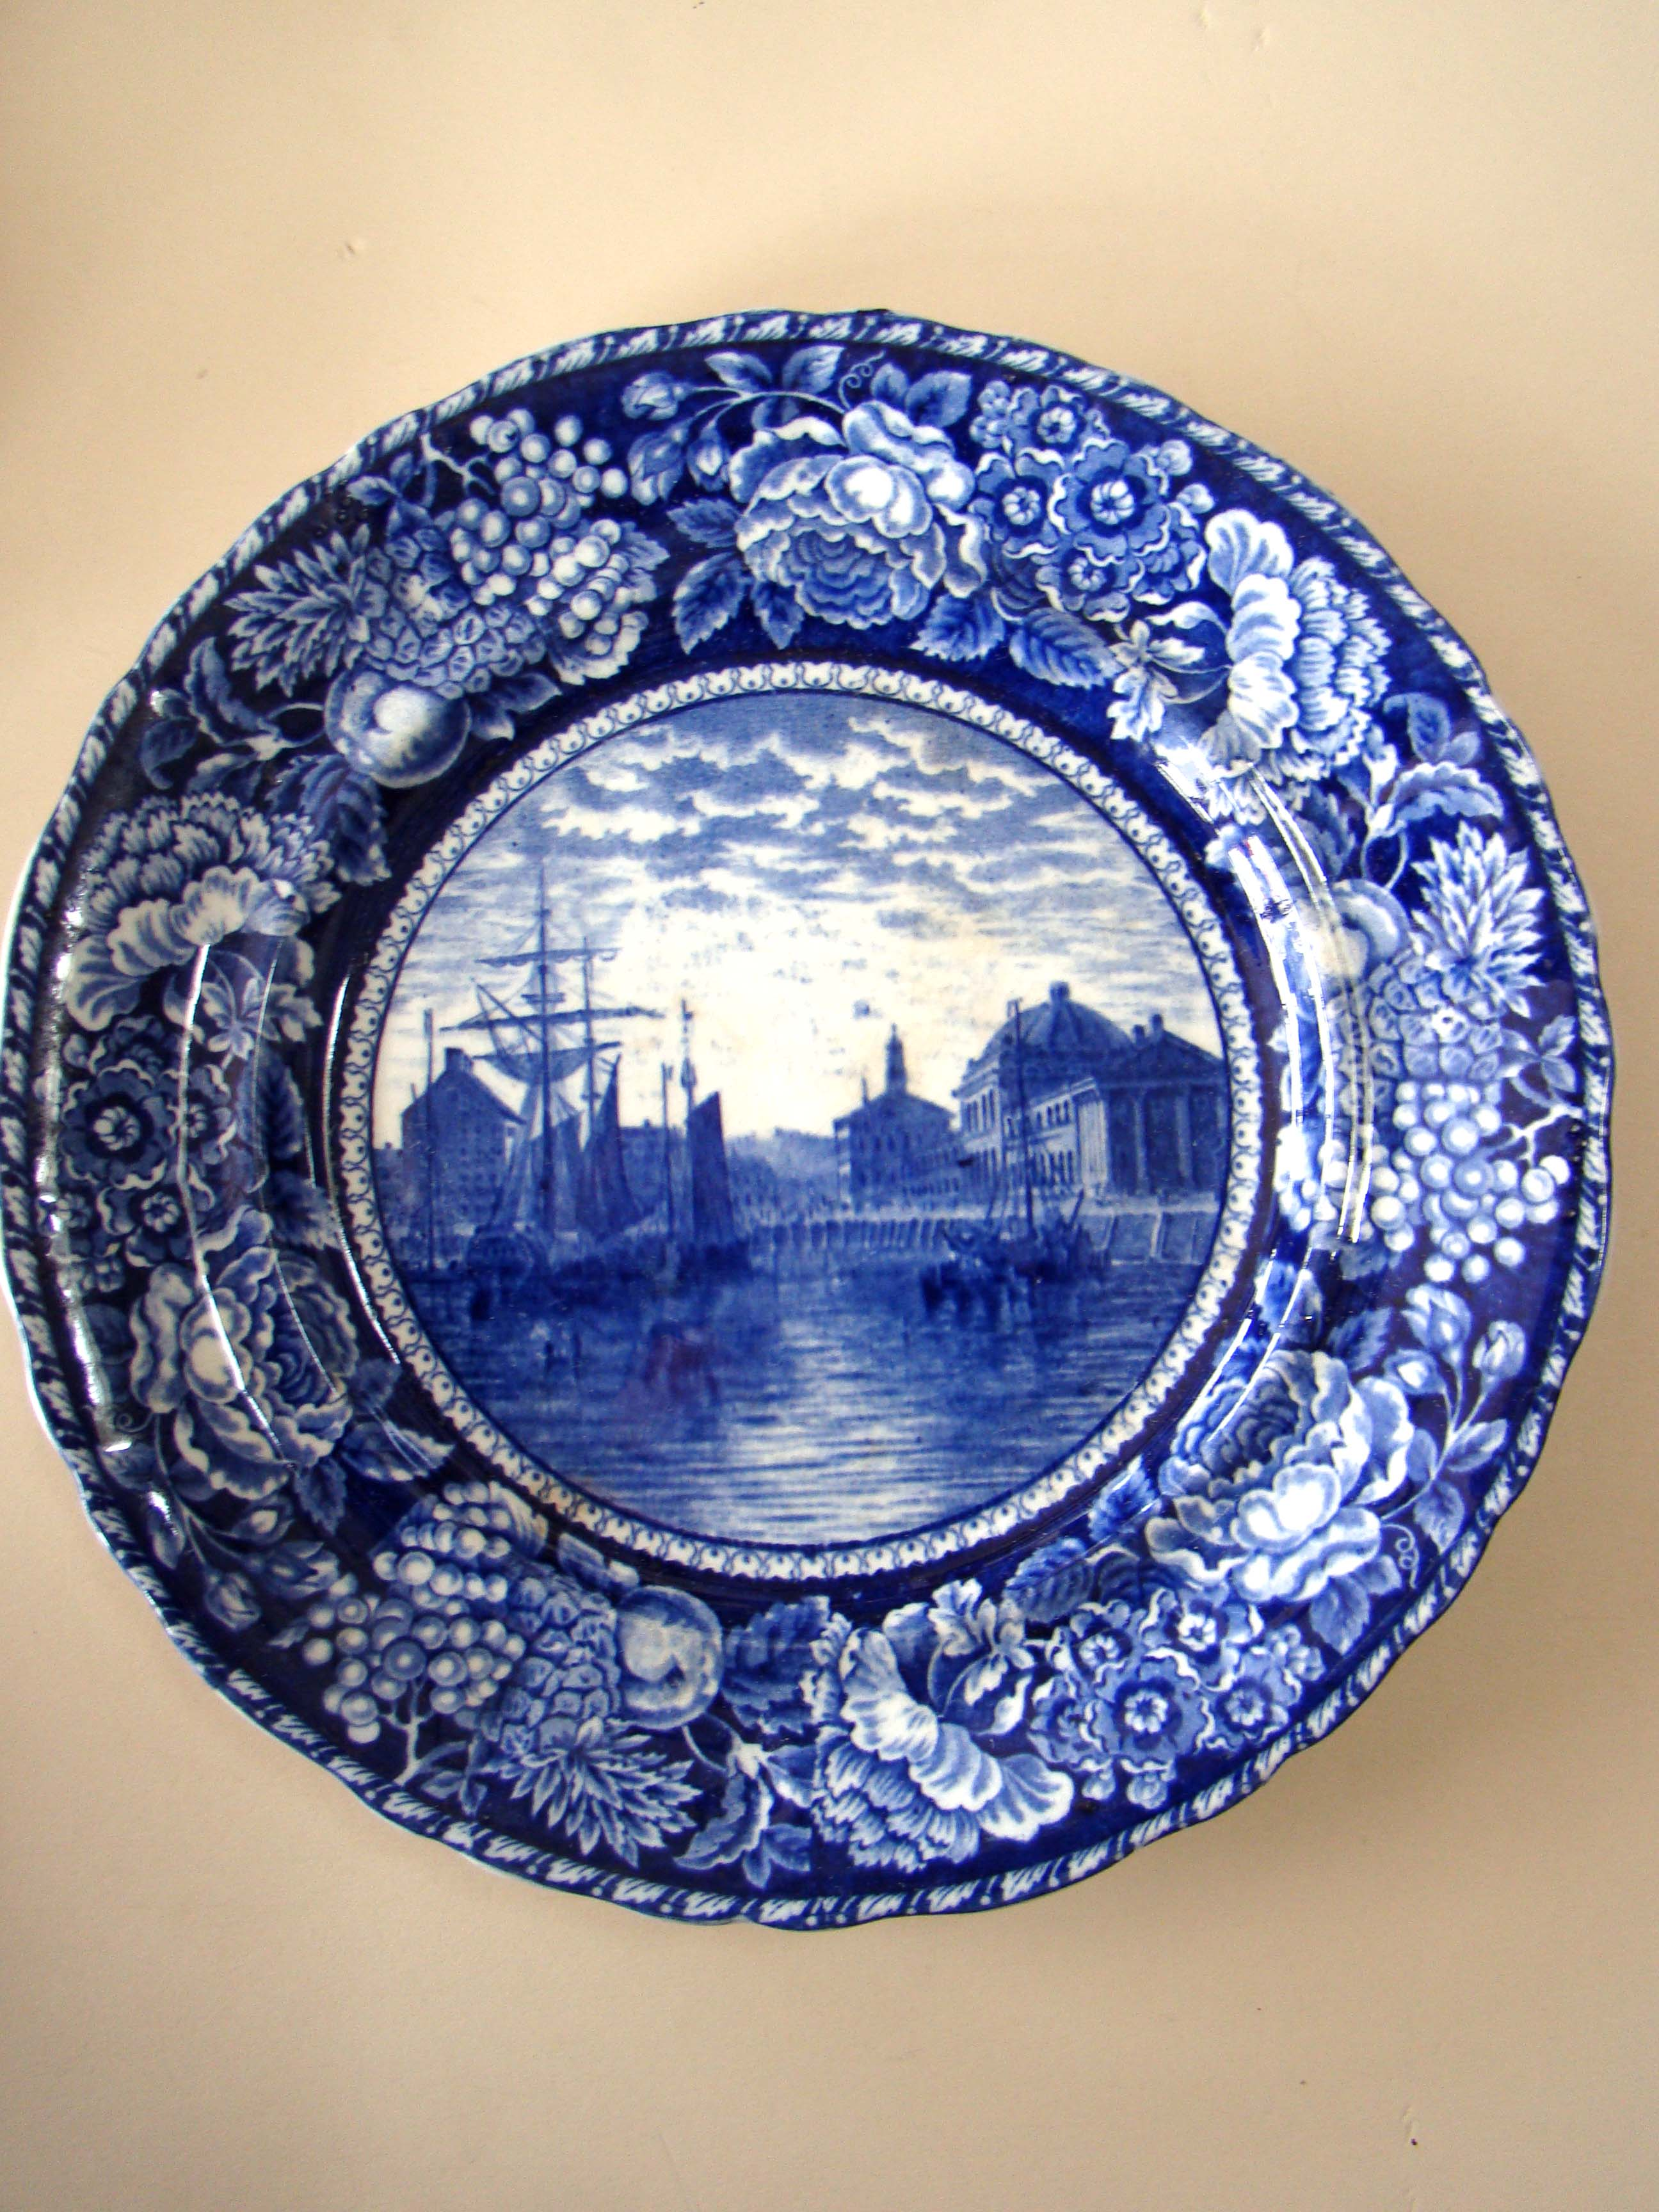 click to view larger image of An historical Staffordshire plate depicting Faneuil Hall as seen from Boston harbor